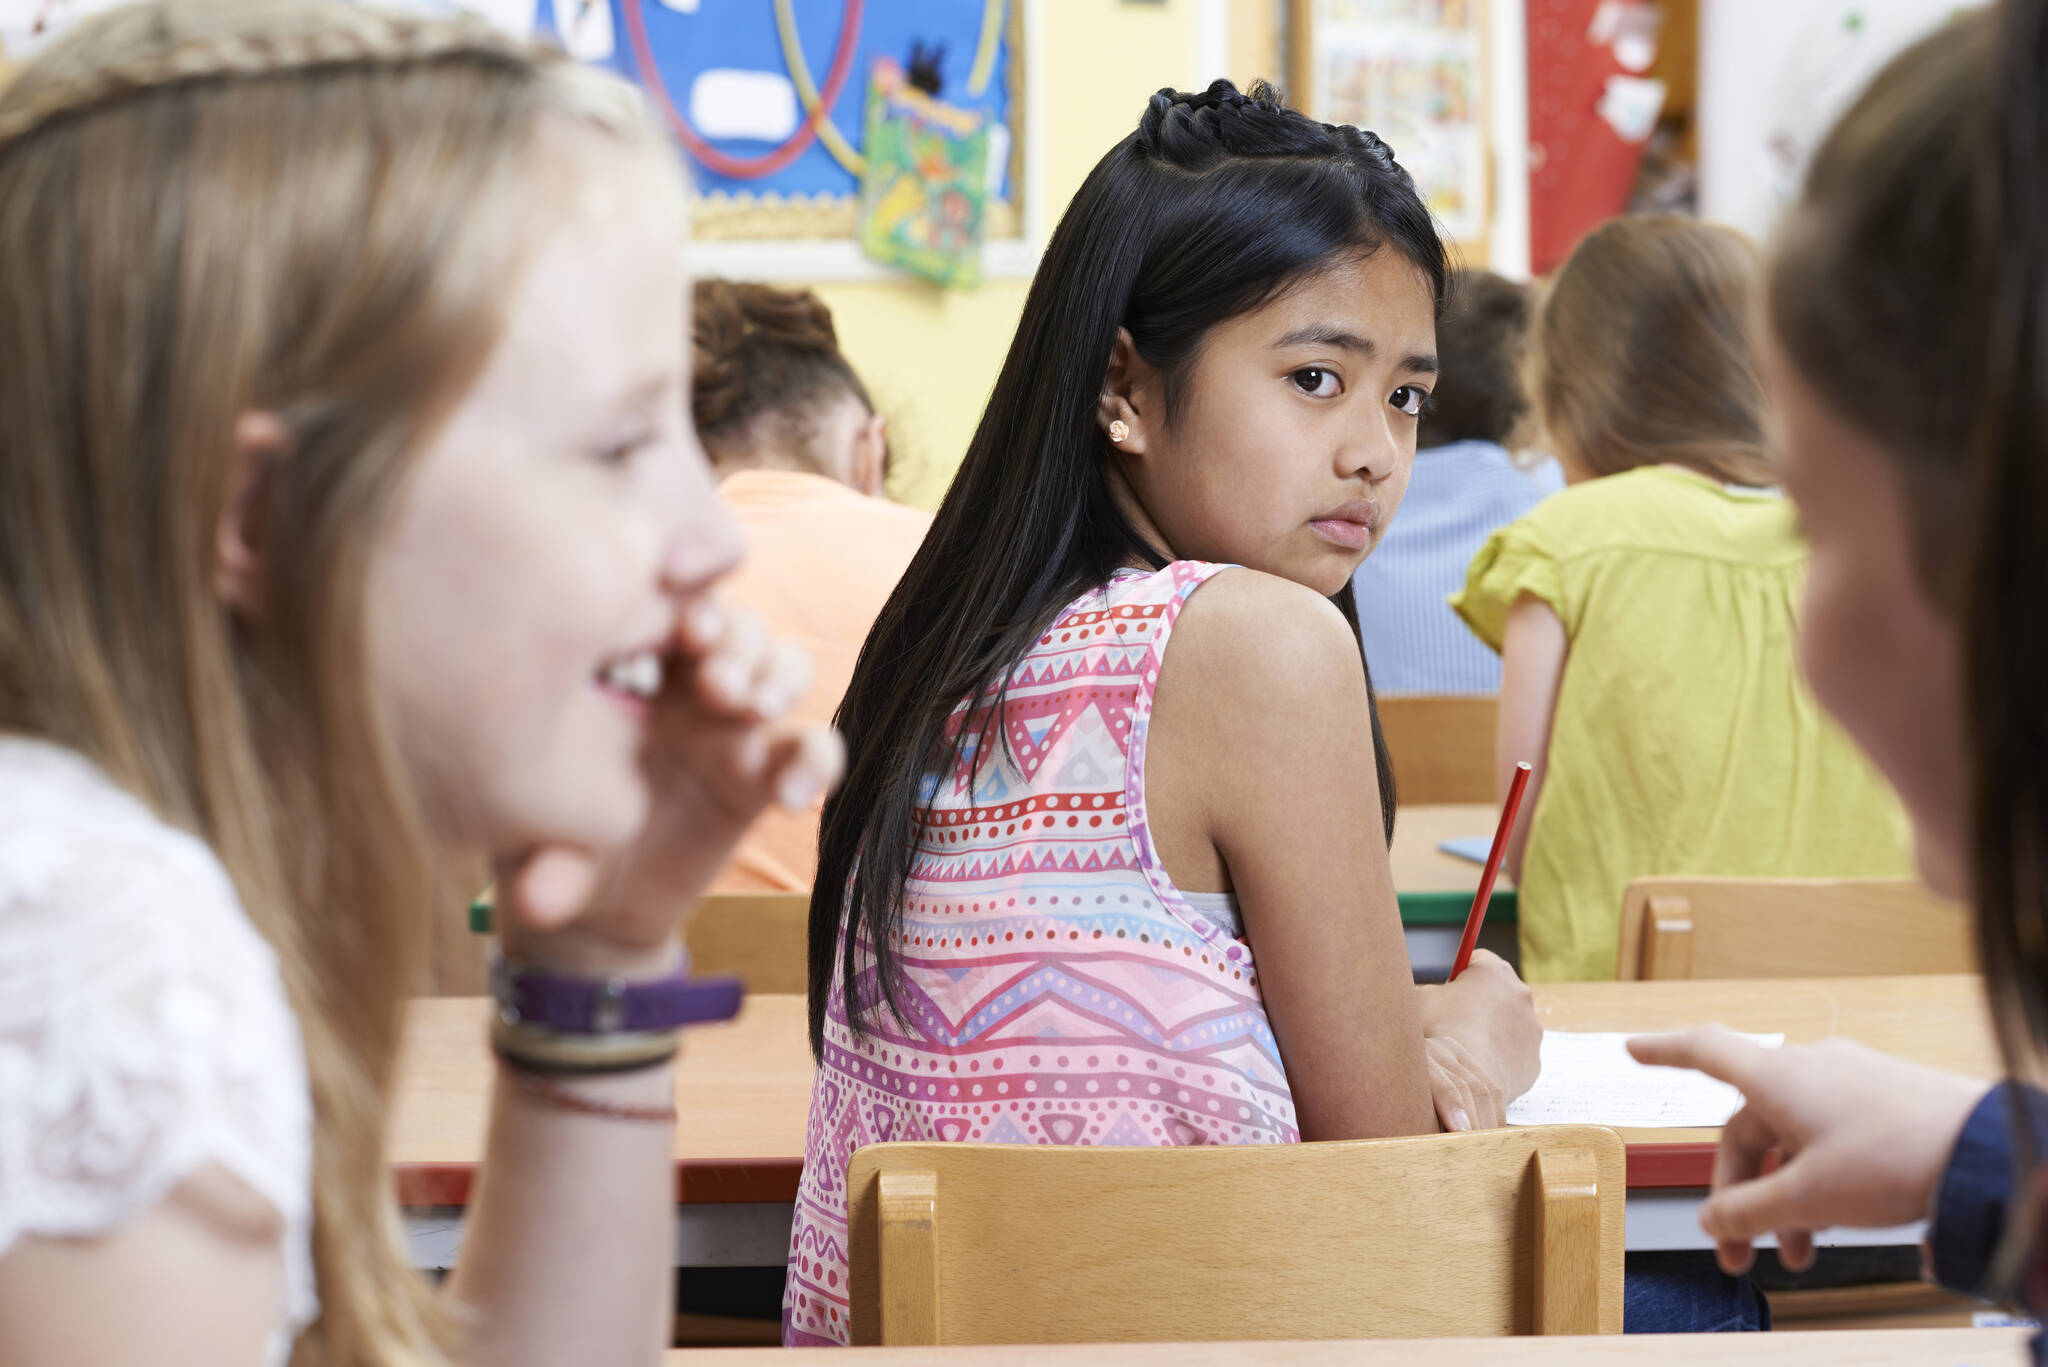 UBC study finds 57 per cent of kids have witnessed race-based bullying in schools. (File photo)